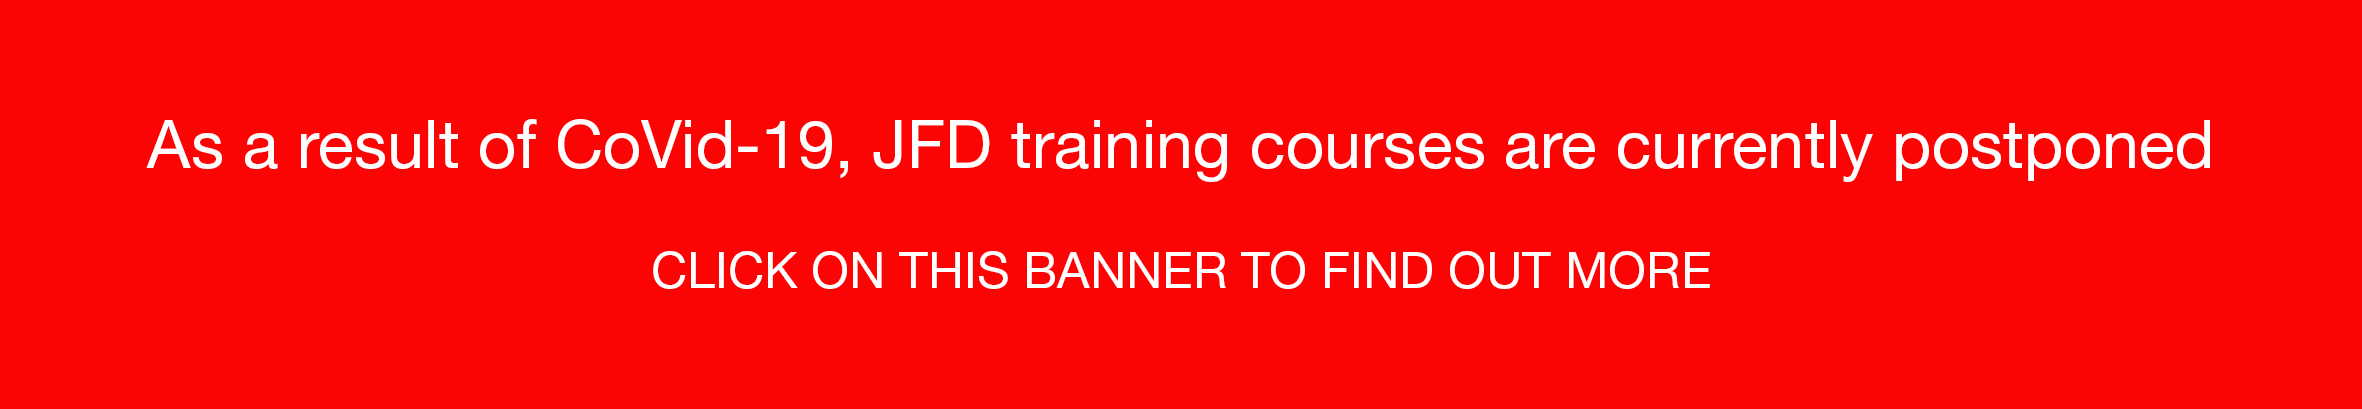 Training postponed banner.jpg